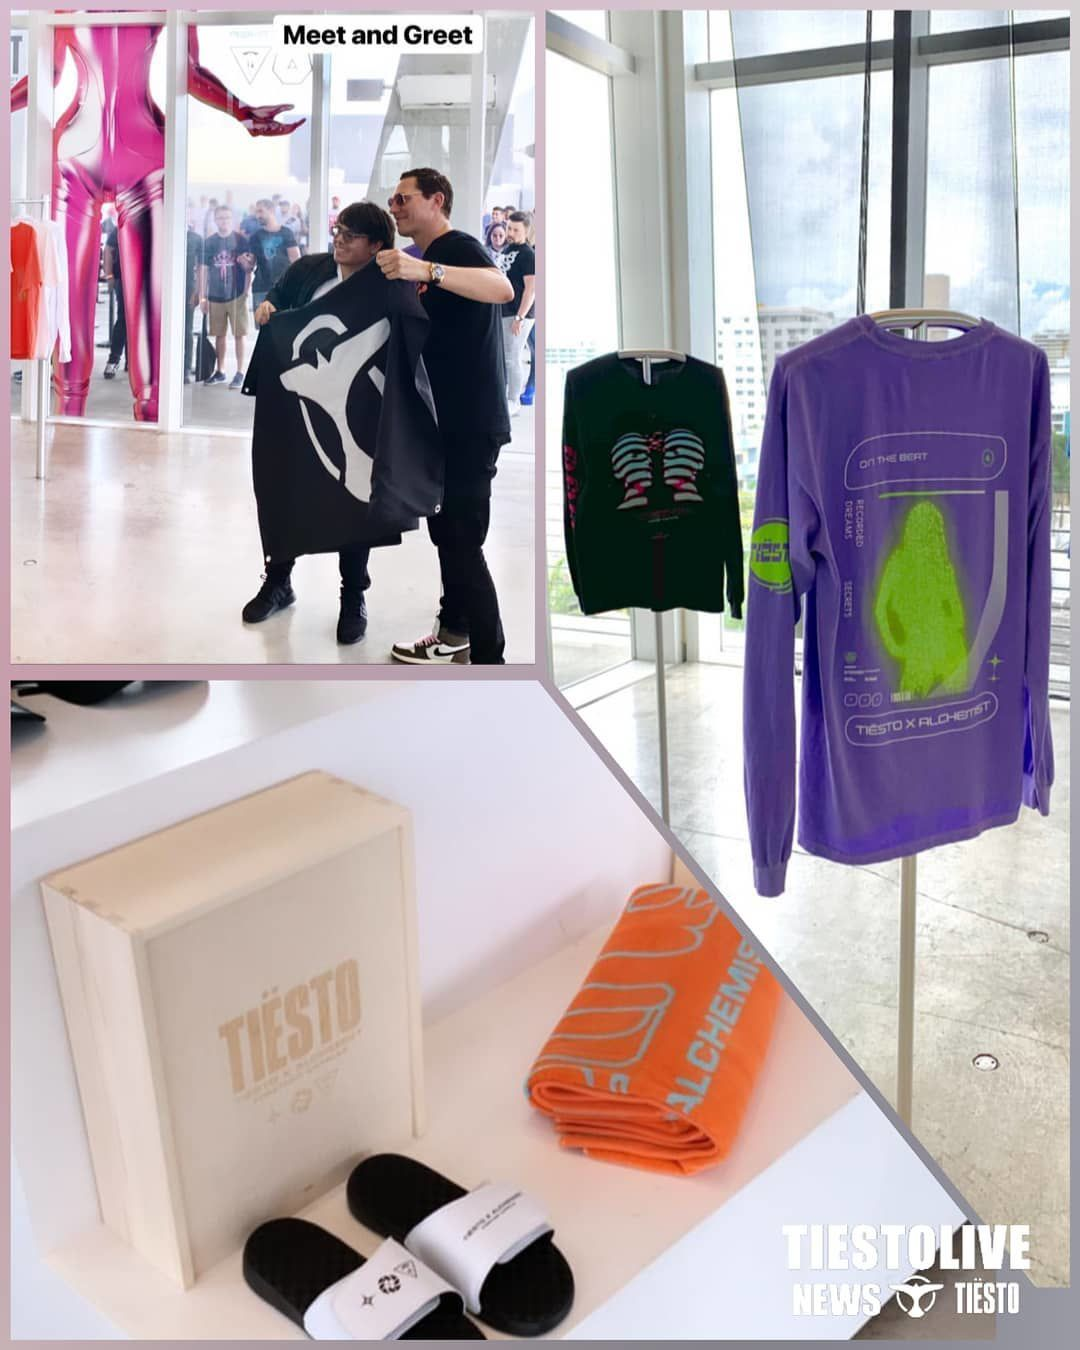 Tiësto x Alchemist | pop-up shop | in Miami - march 29, 2019